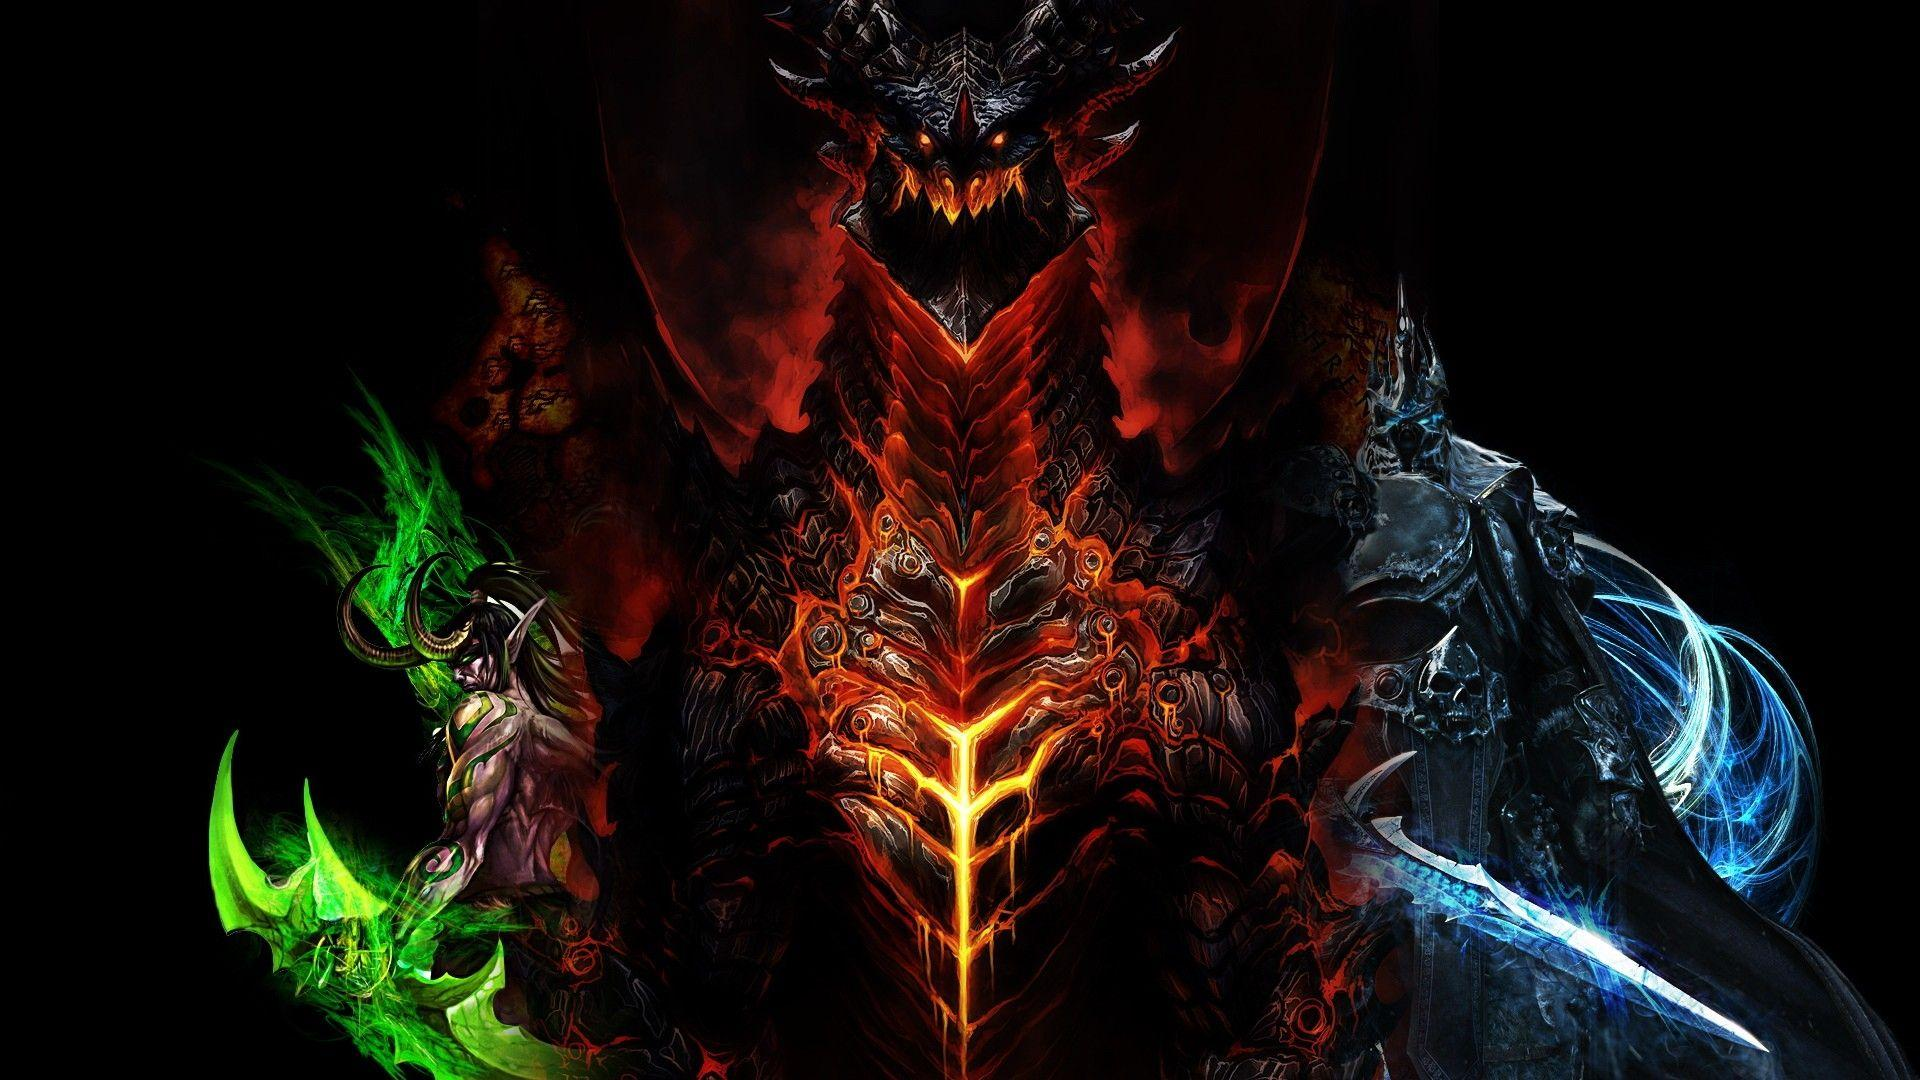 Download Wallpapers 1920x1080 world of warcraft, dragon, characters